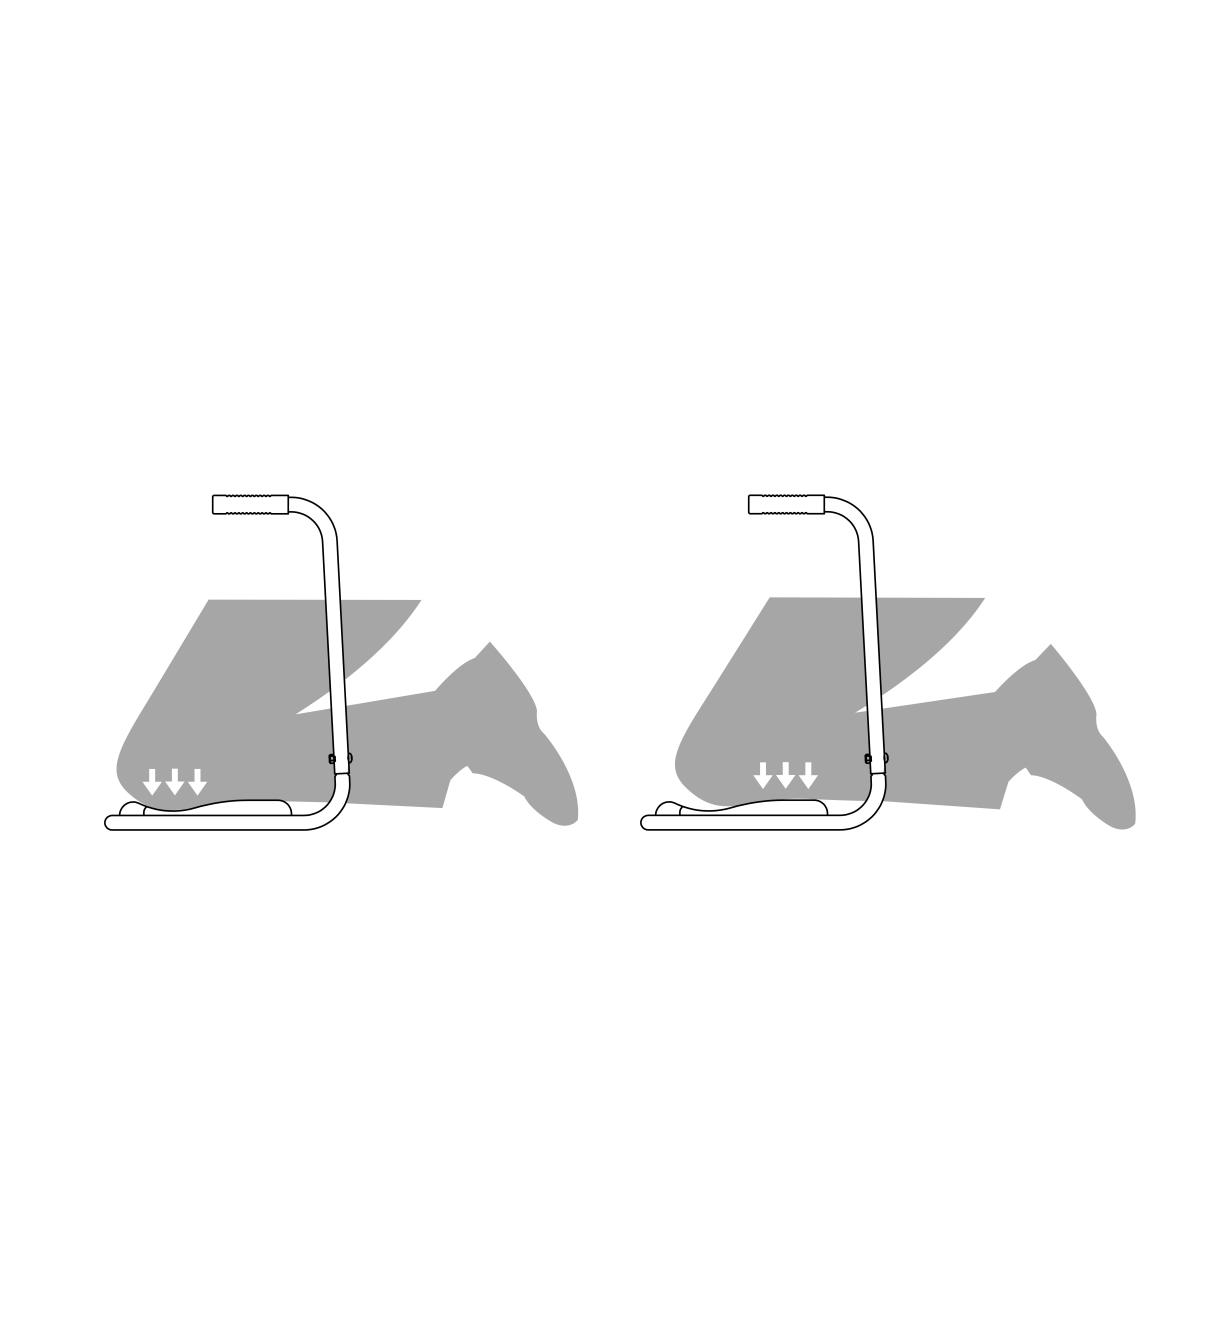 Two illustrations show how a person shifting their weight on the Garden Kneeler transfers weight from knees to shins